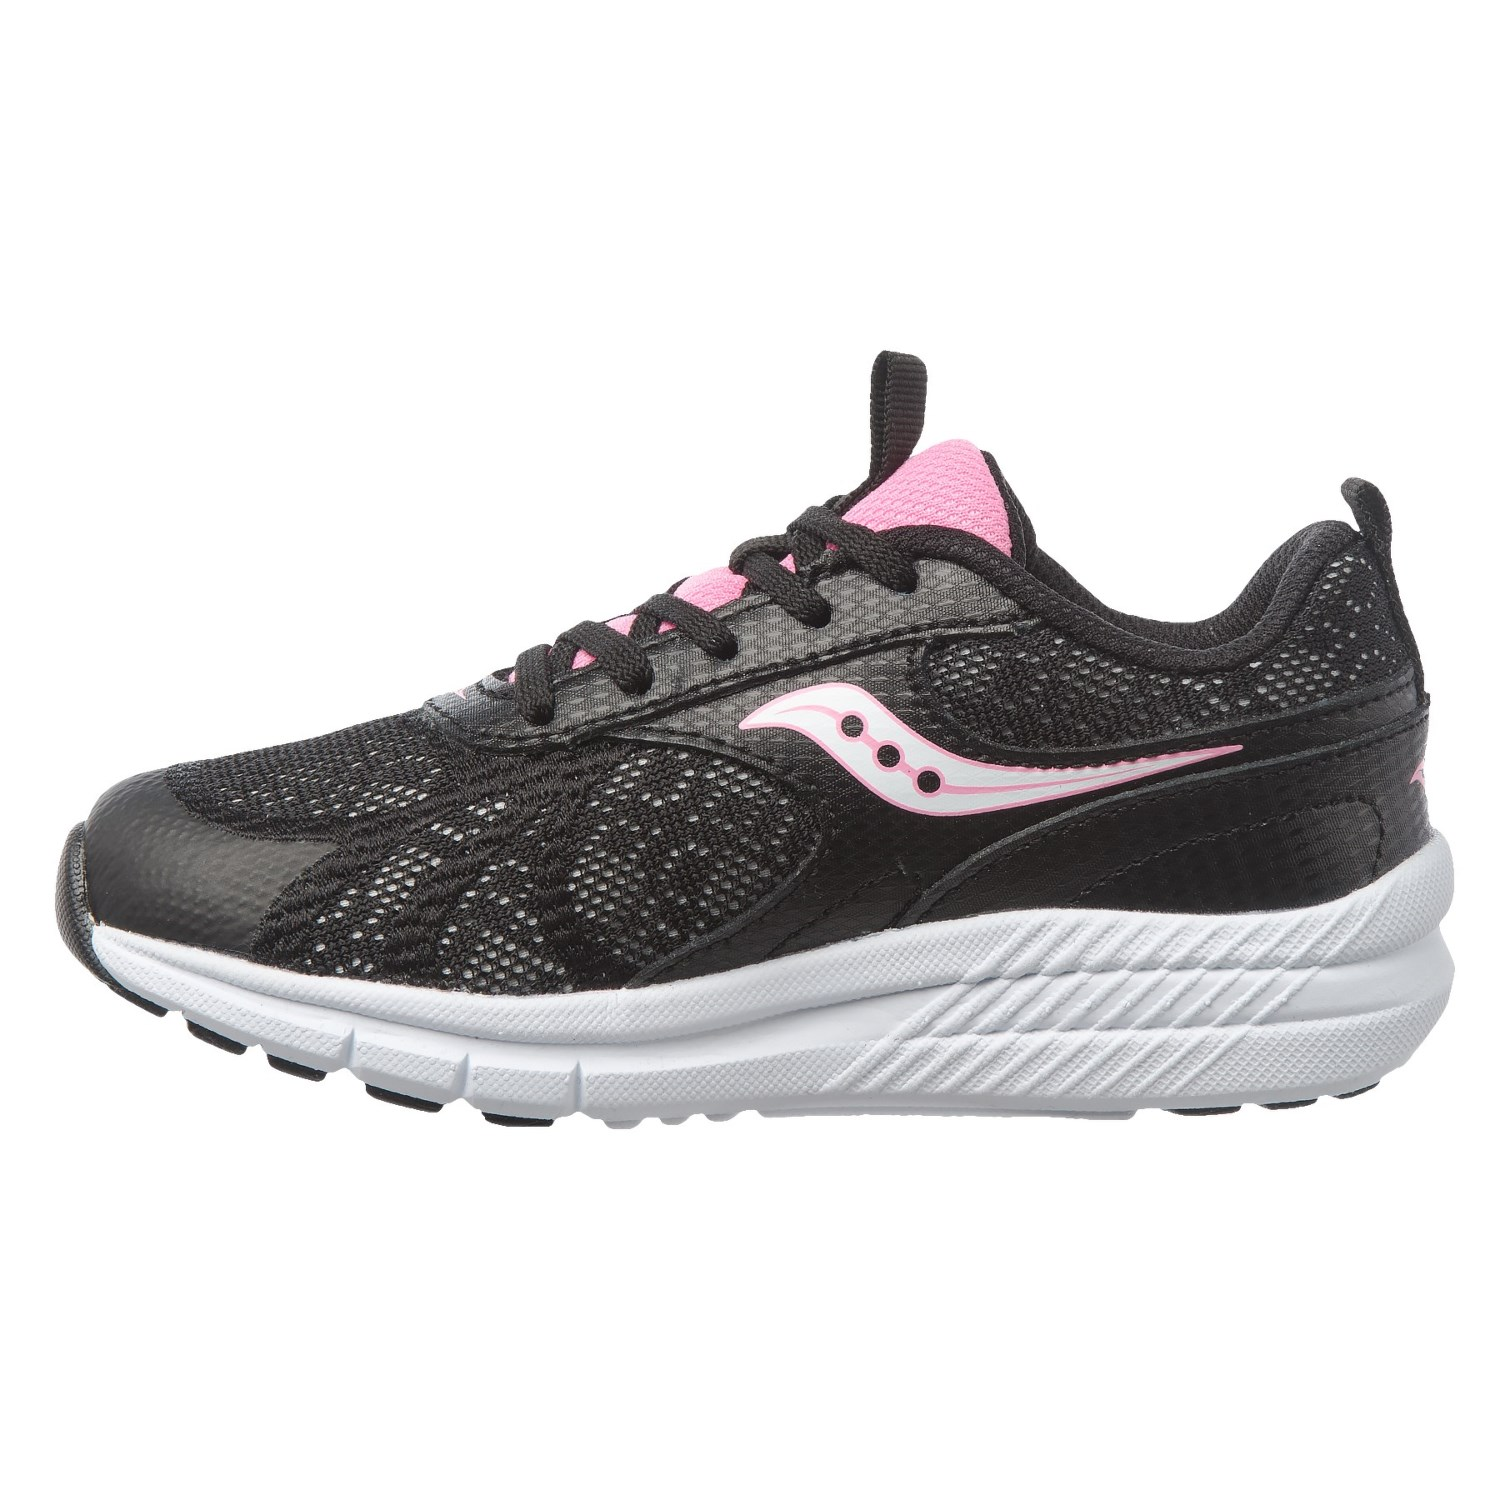 130ae1957cd7 Saucony Velocity Sneakers (For Girls) - Save 50%